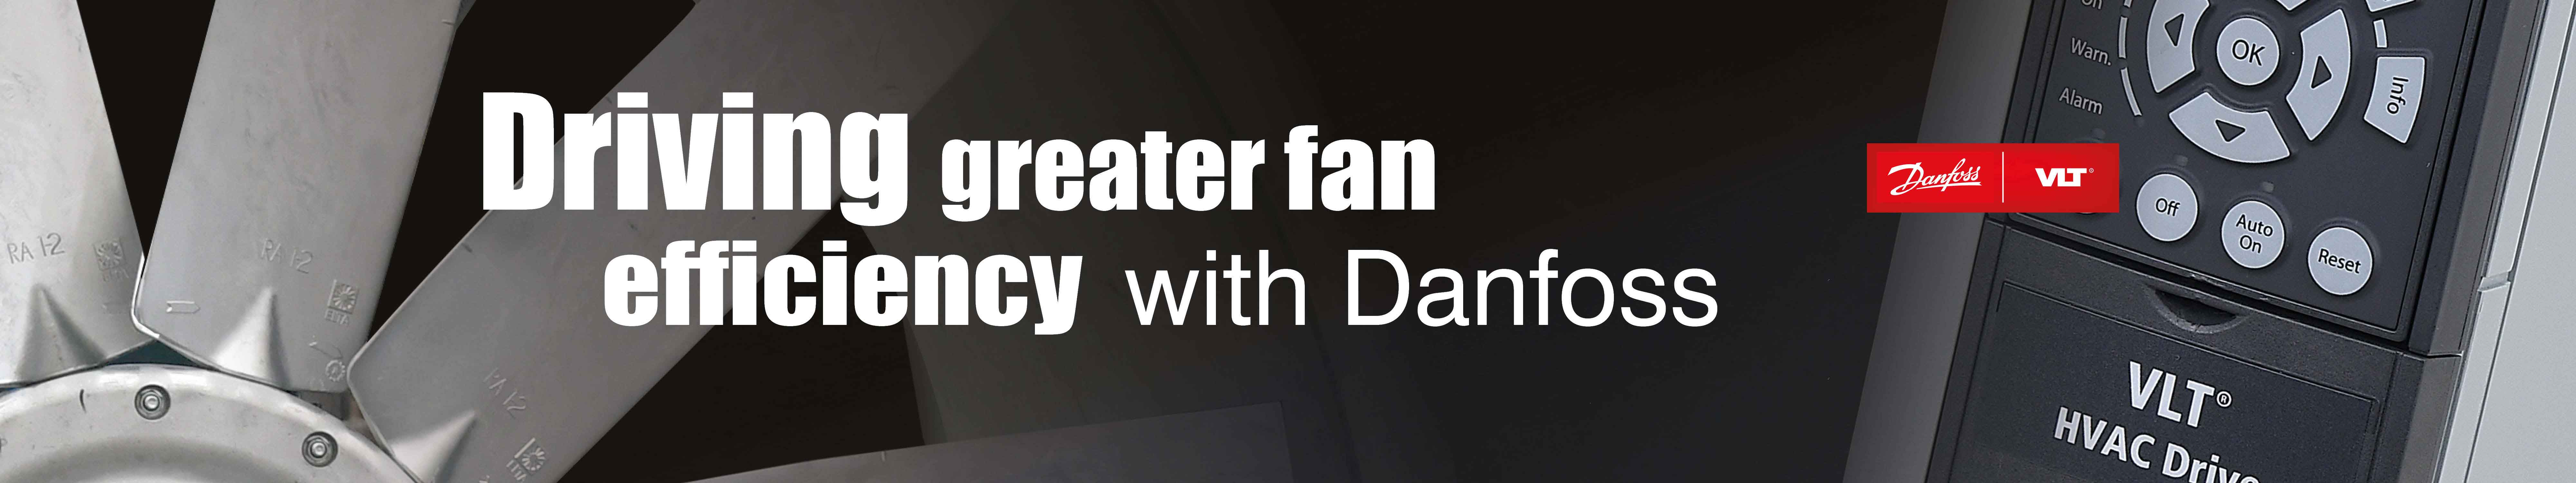 Driving great fan efficiency with Danfoss